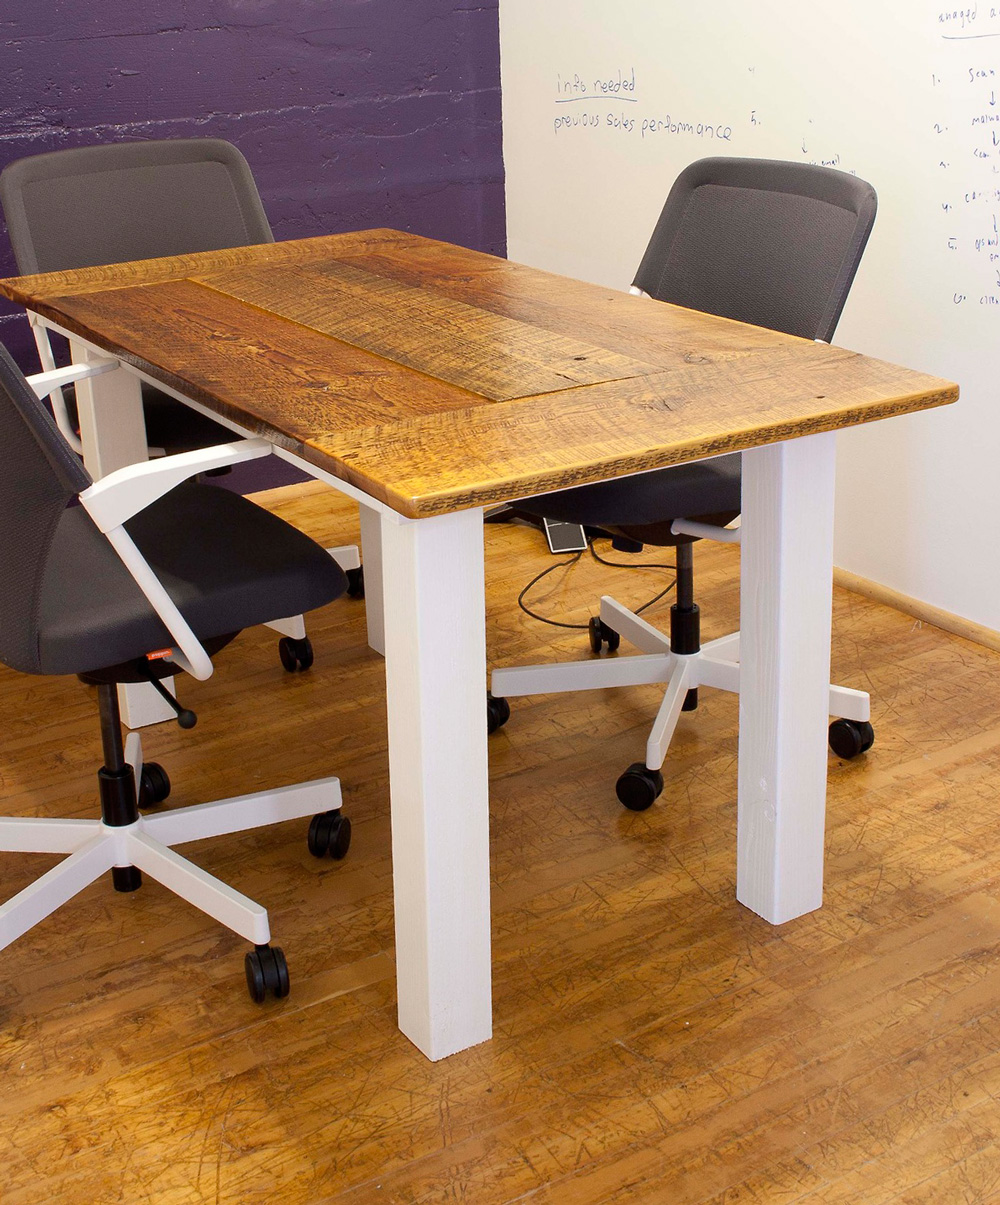 Meeting Room Tables Kitchens Online - Small conference room table